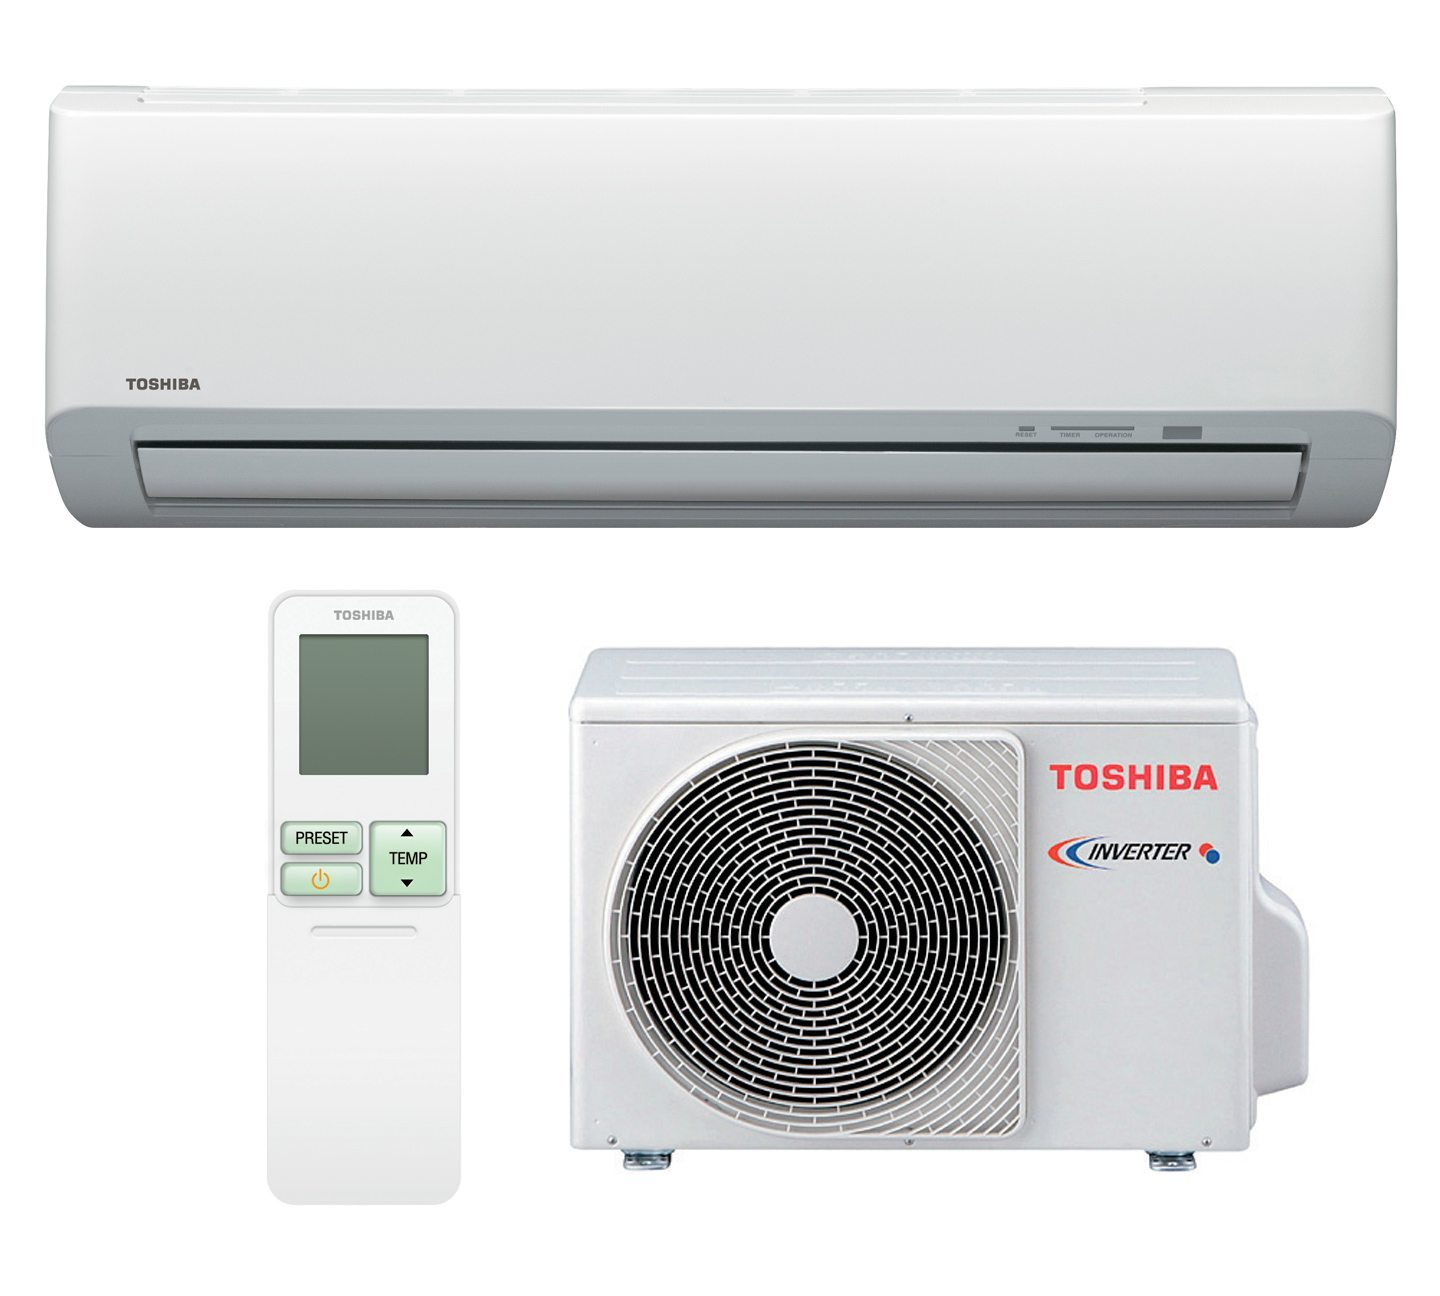 Toshiba Split System Air Conditioning Review